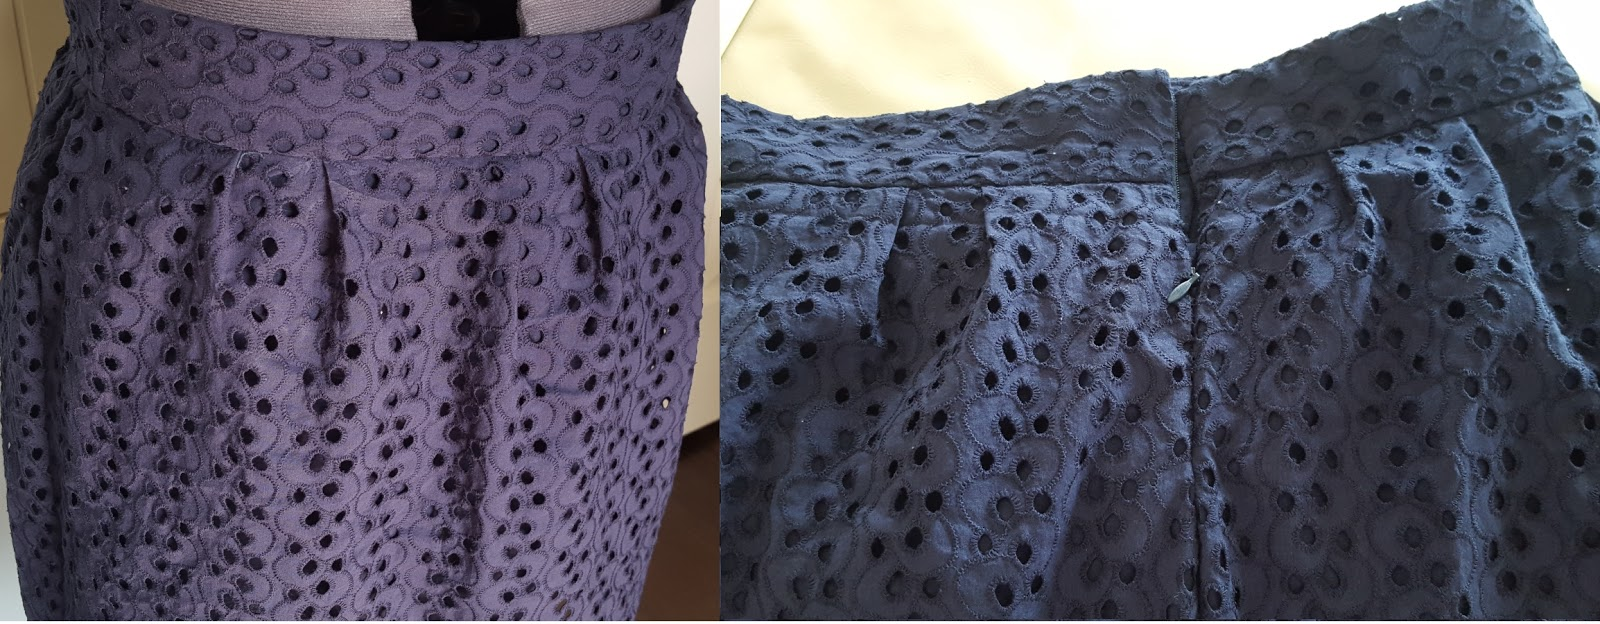 "Handmade eyelet skirt with 2"" and 1"" pleats"